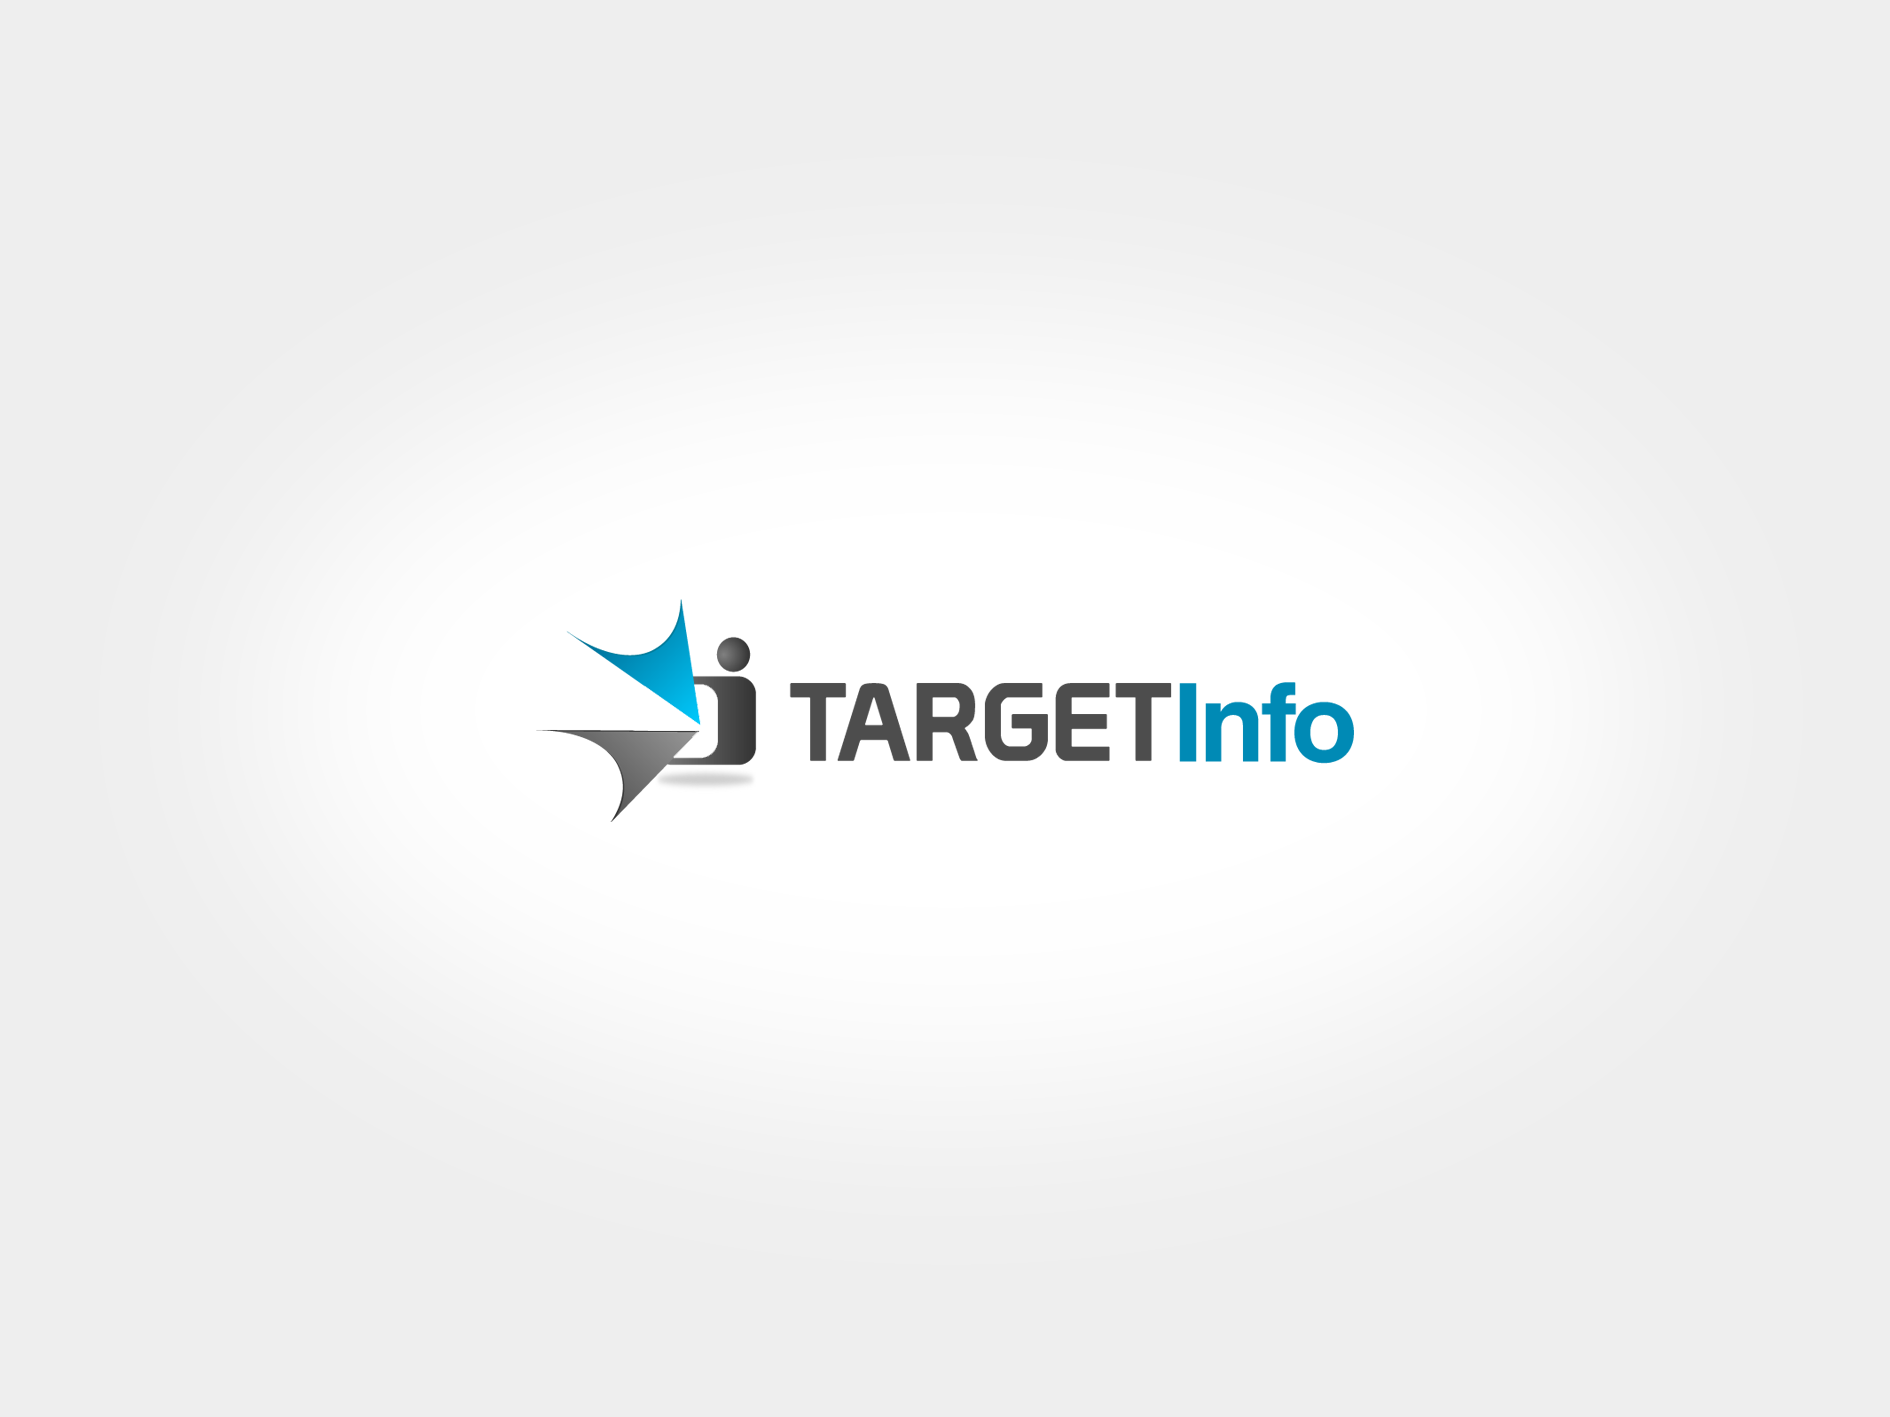 Help Target Info with a new logo